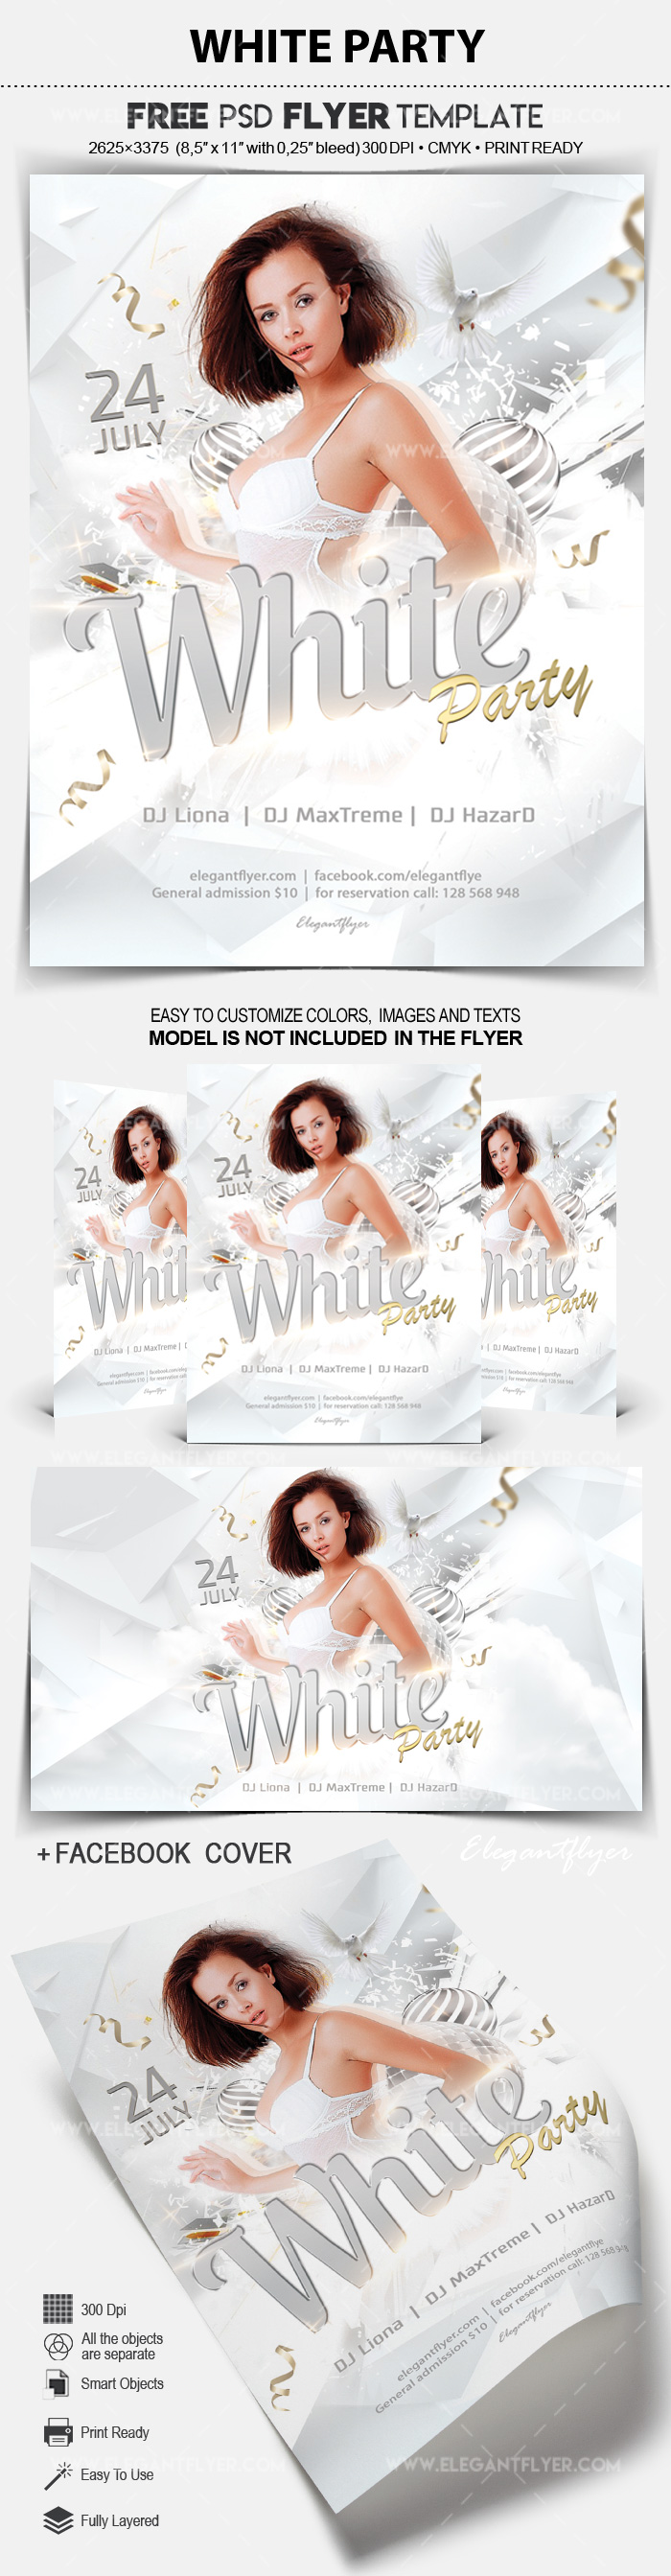 white party free flyer psd template by elegantflyer